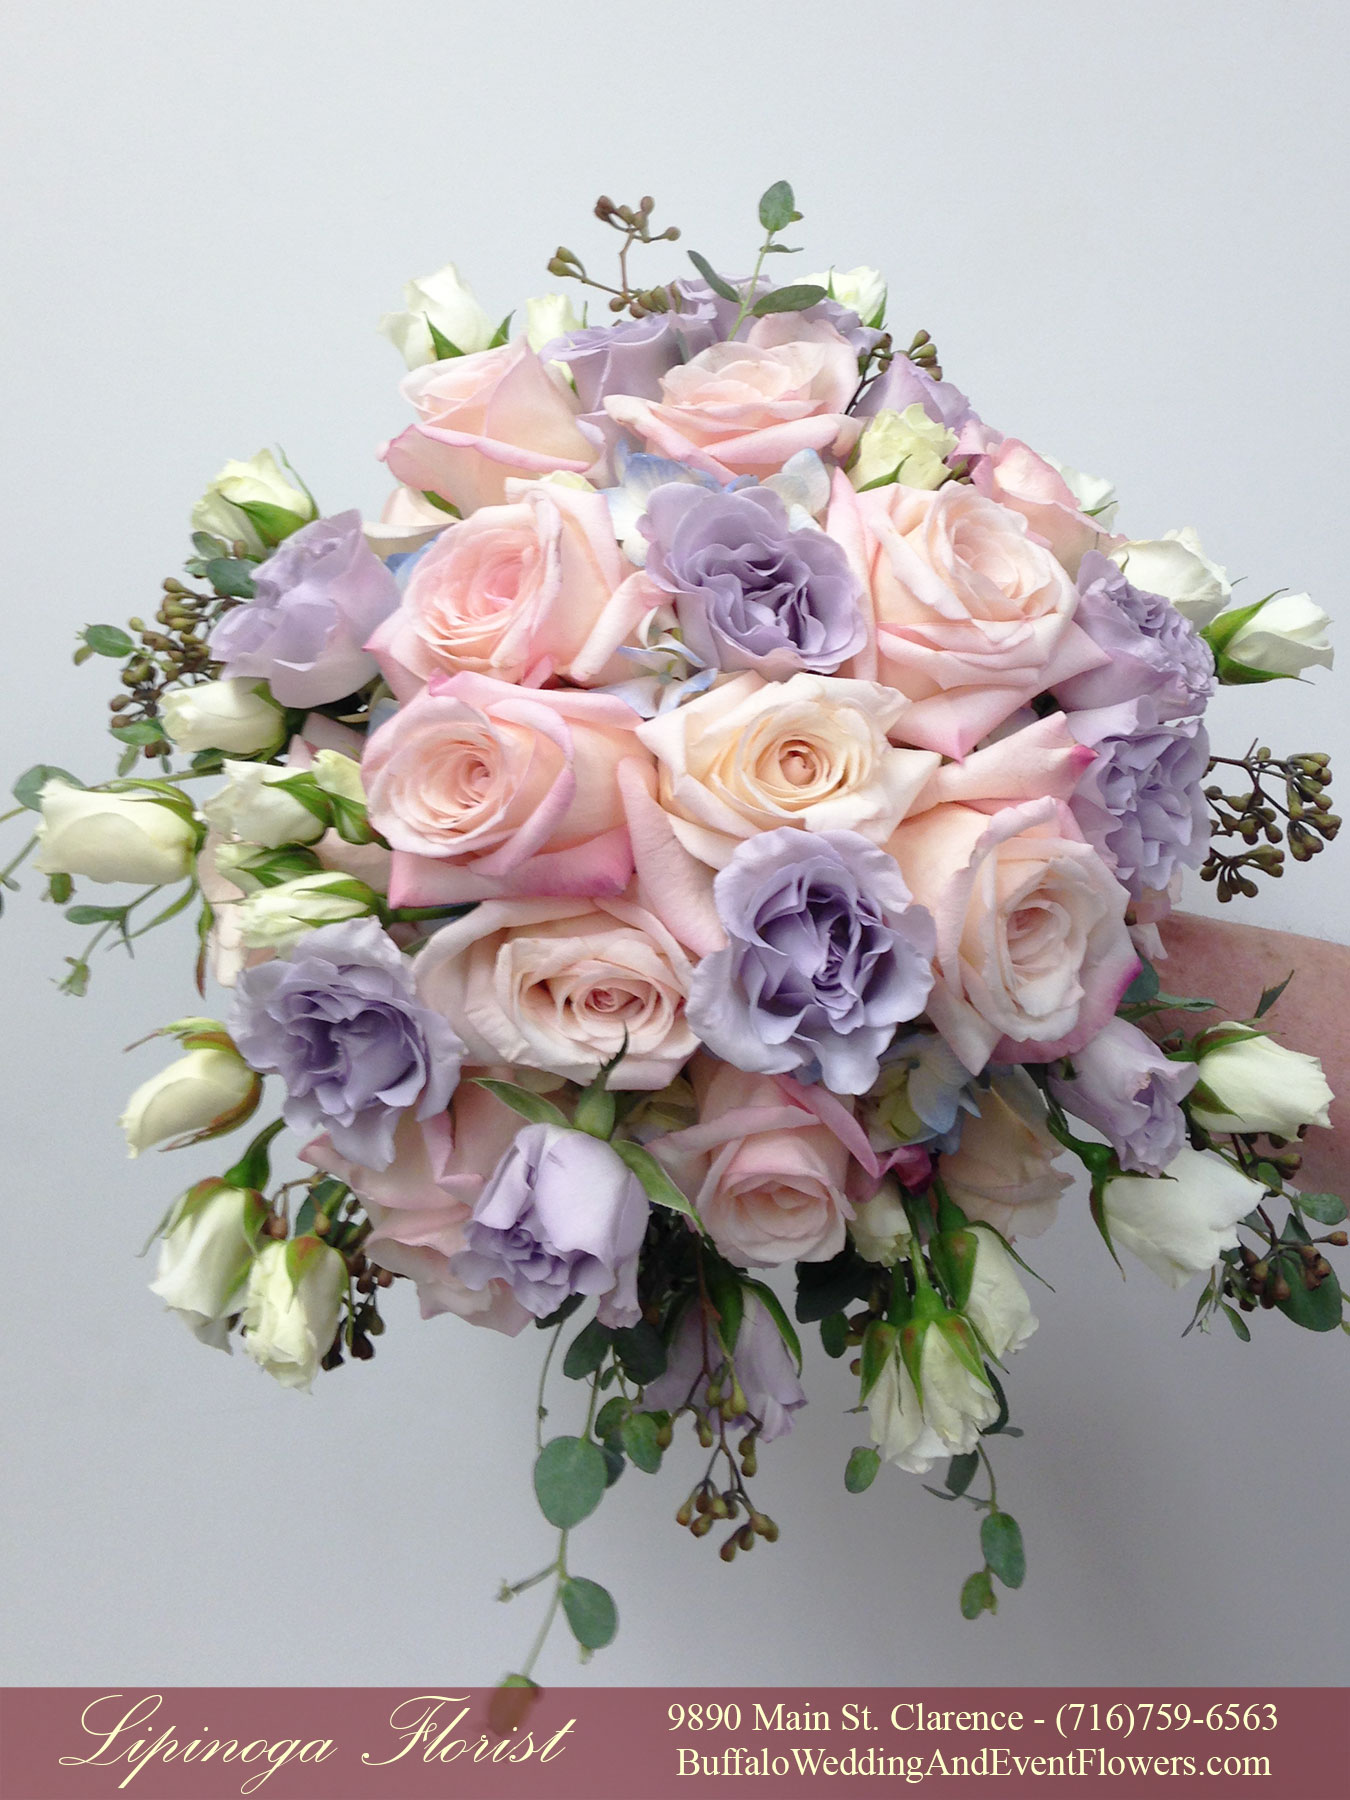 April 2015 Buffalo Wedding Event Flowers By Lipinoga Florist